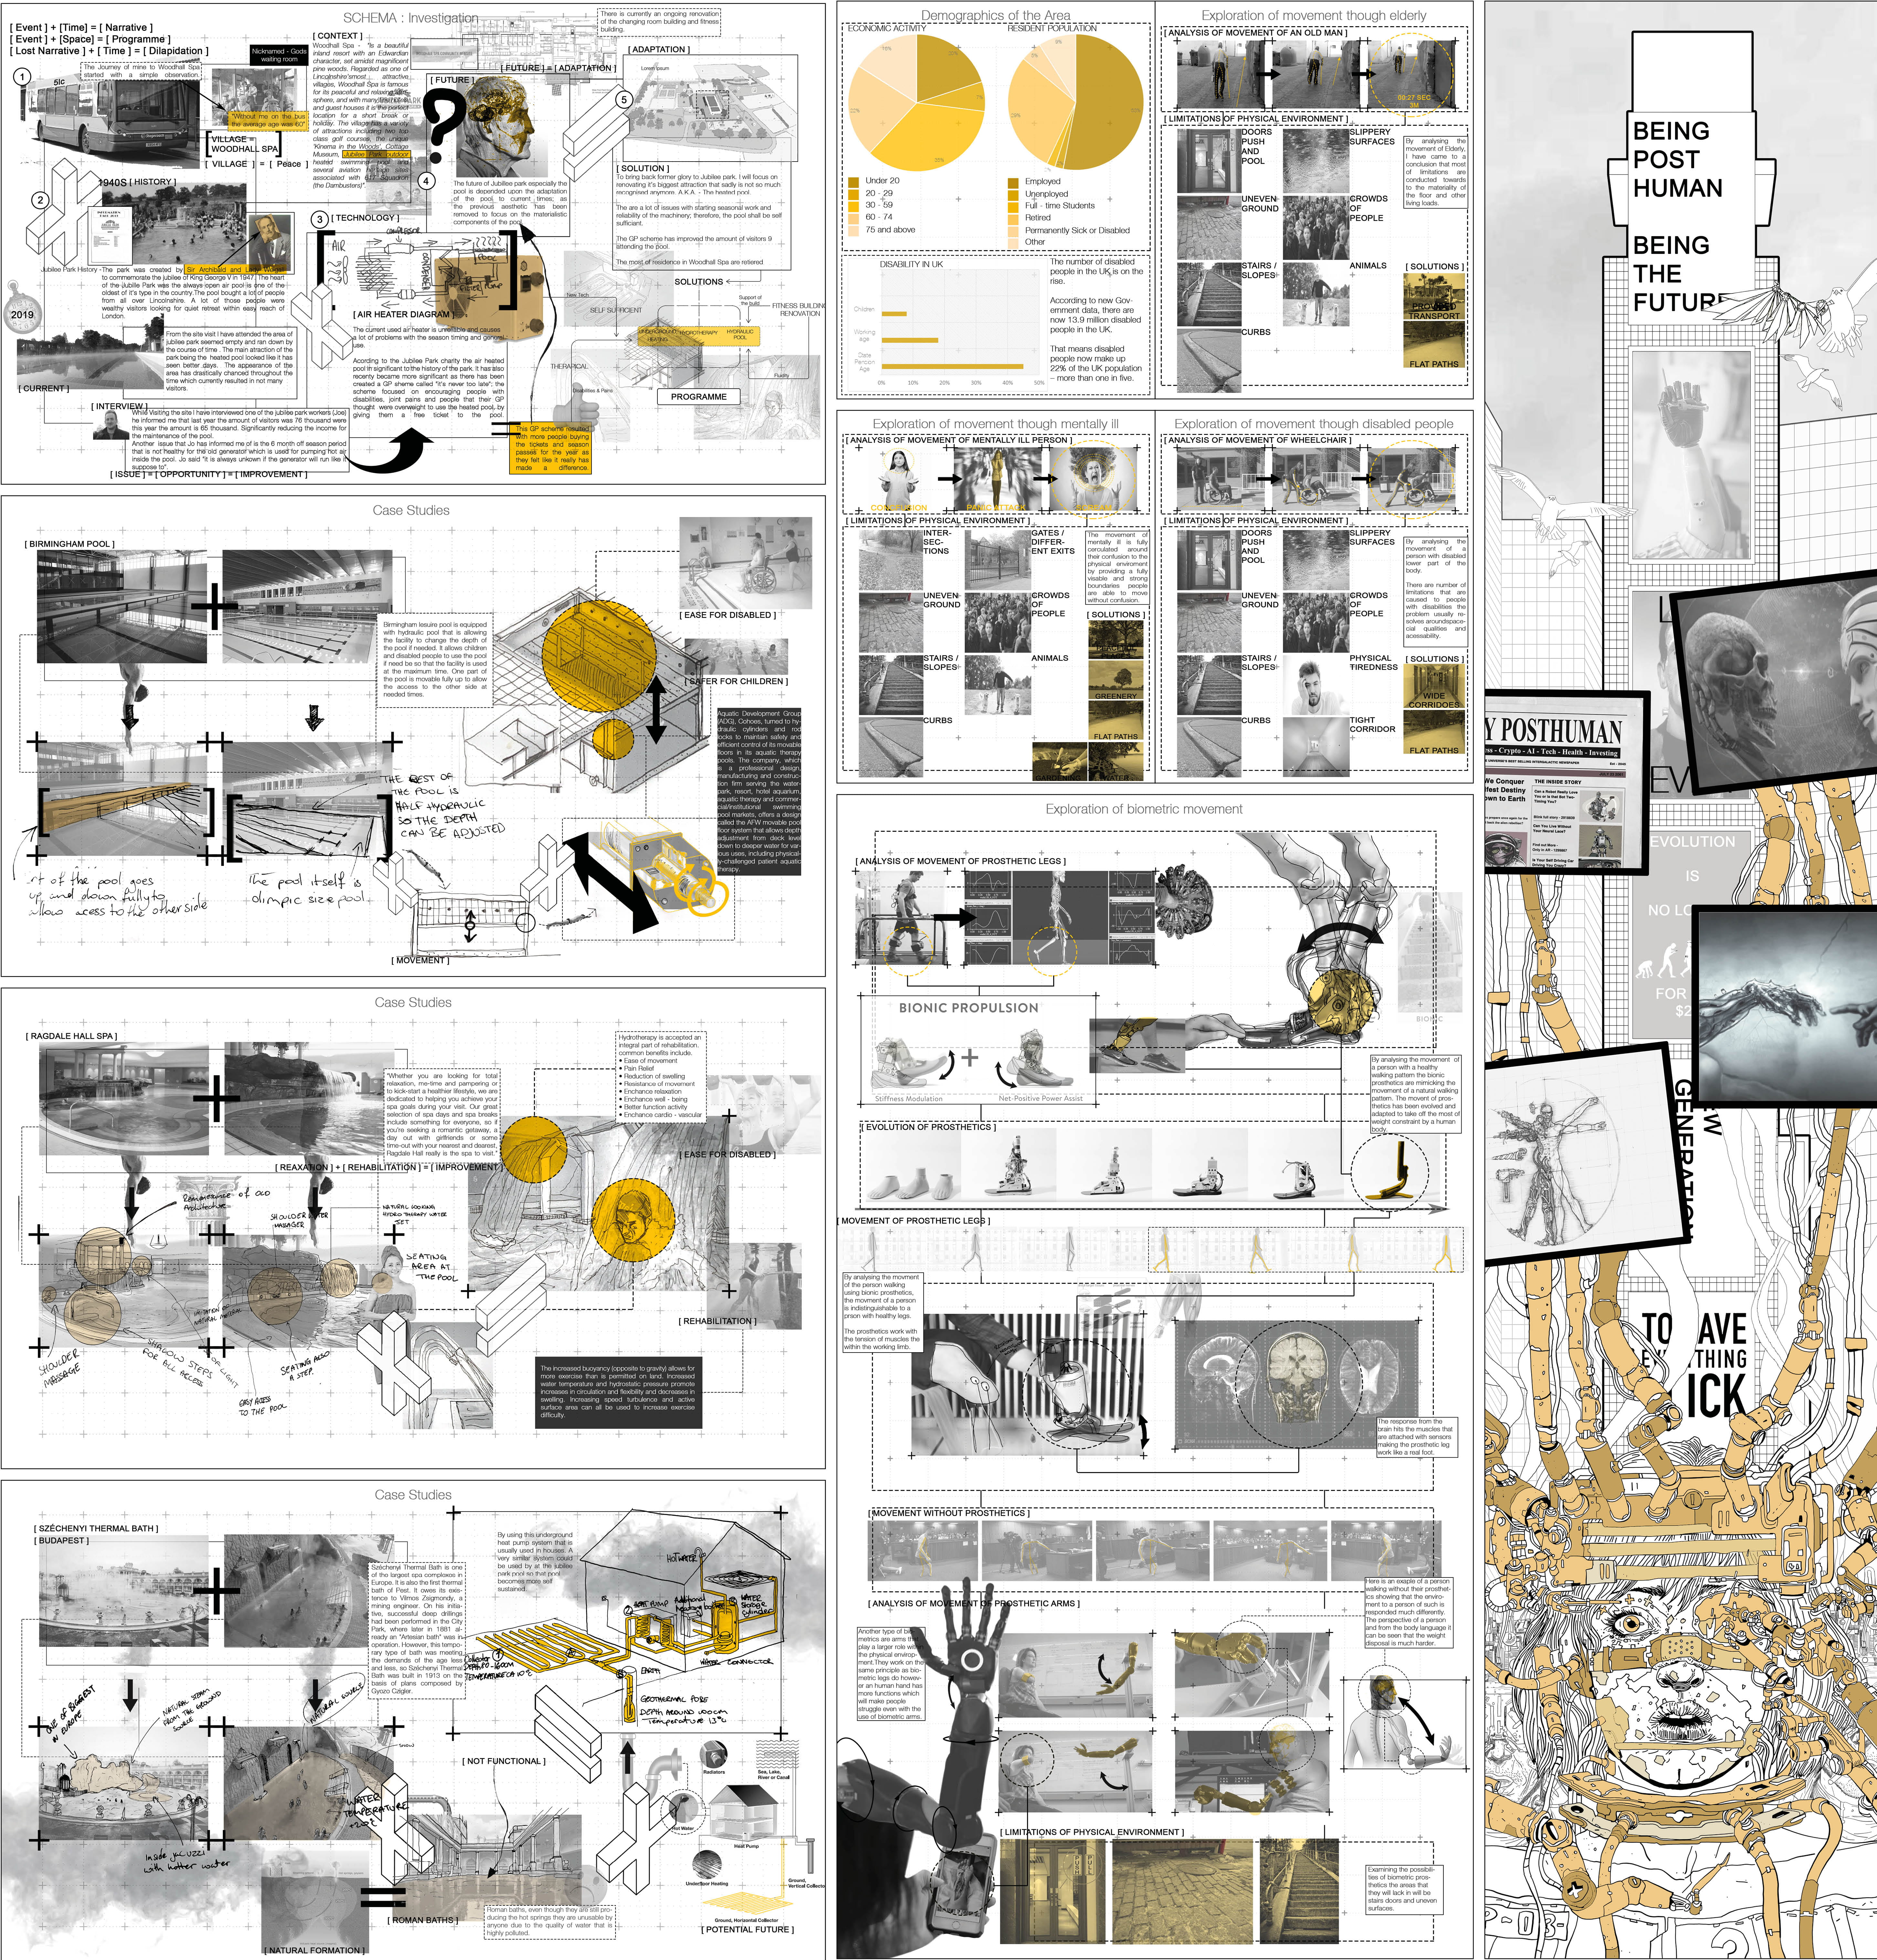 A selection of diagrams making up an initial extraction of thesis.